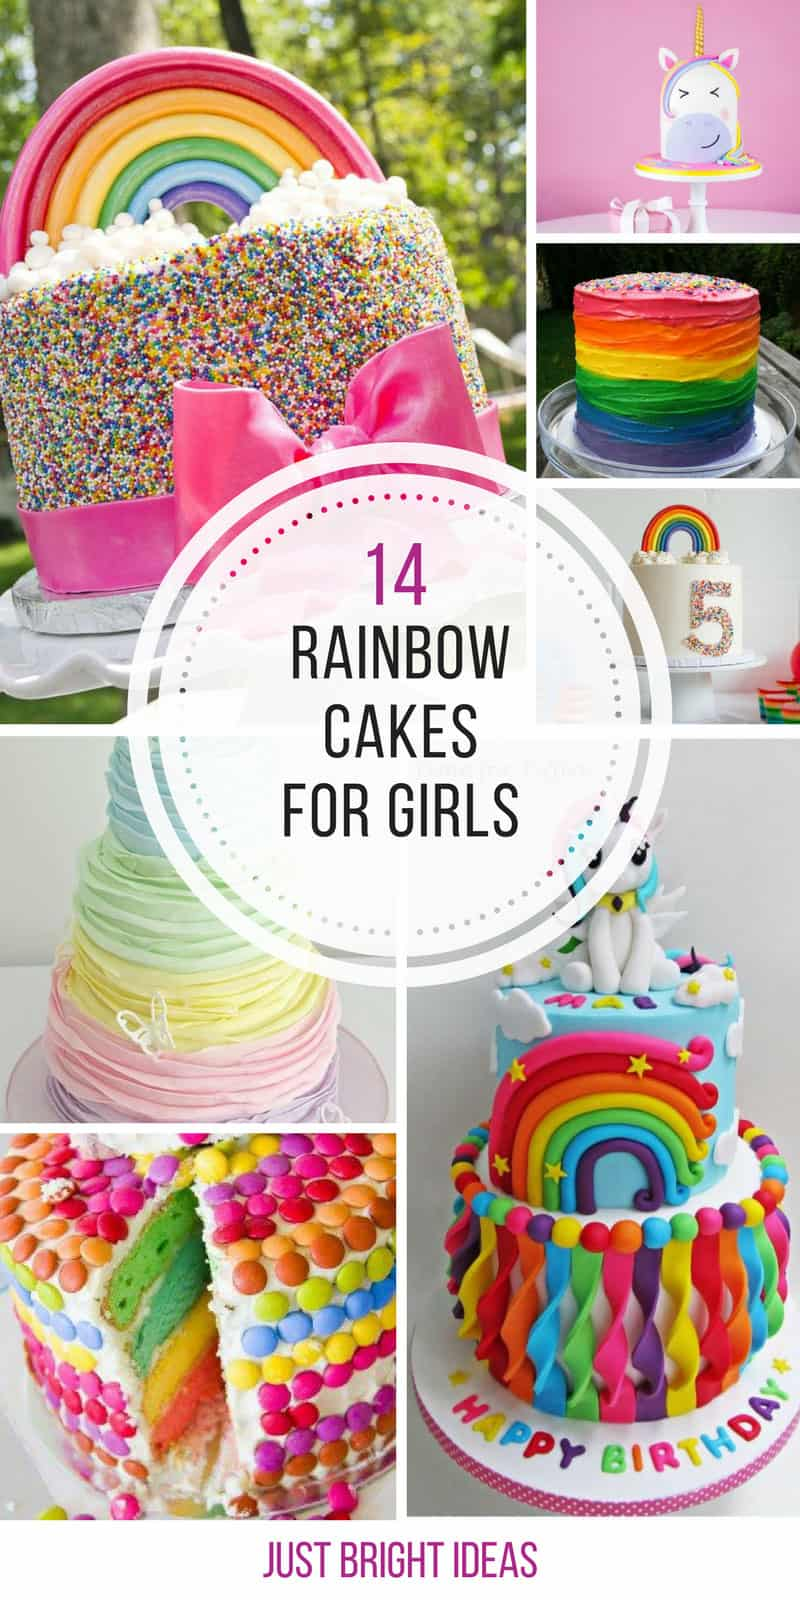 Totally gorgeous rainbow cake recipes!